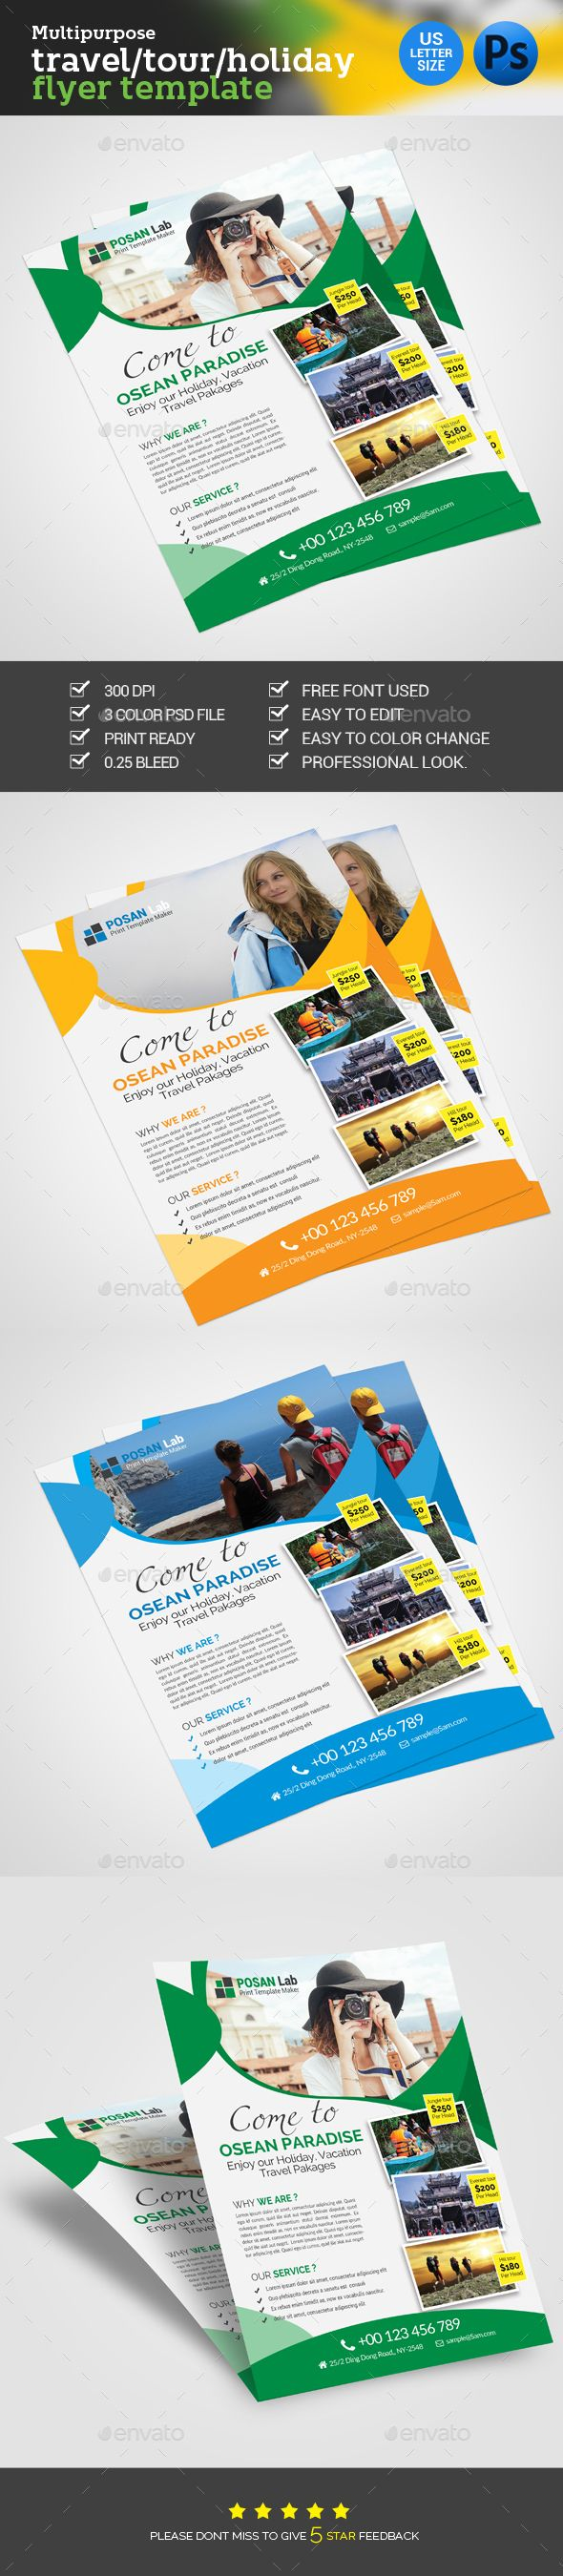 holiday travel flyer flyers flyer template and print templates holiday travel flyer template psd design graphicriver net